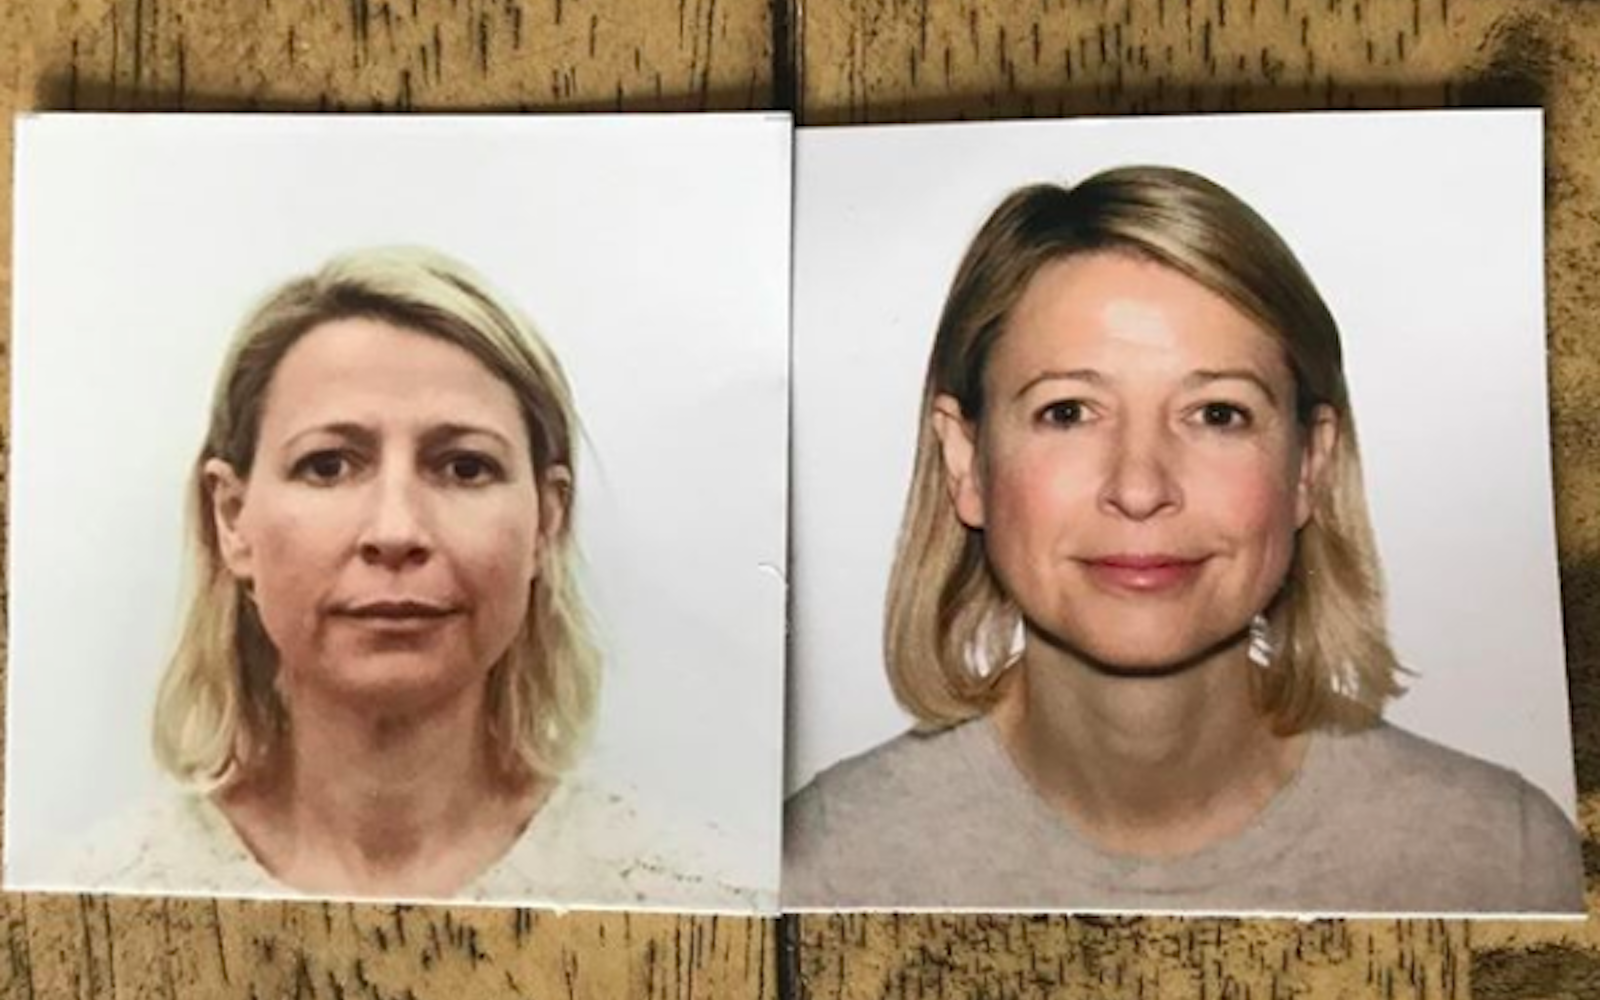 Travel TV personality Samantha Brown shares her passport photos